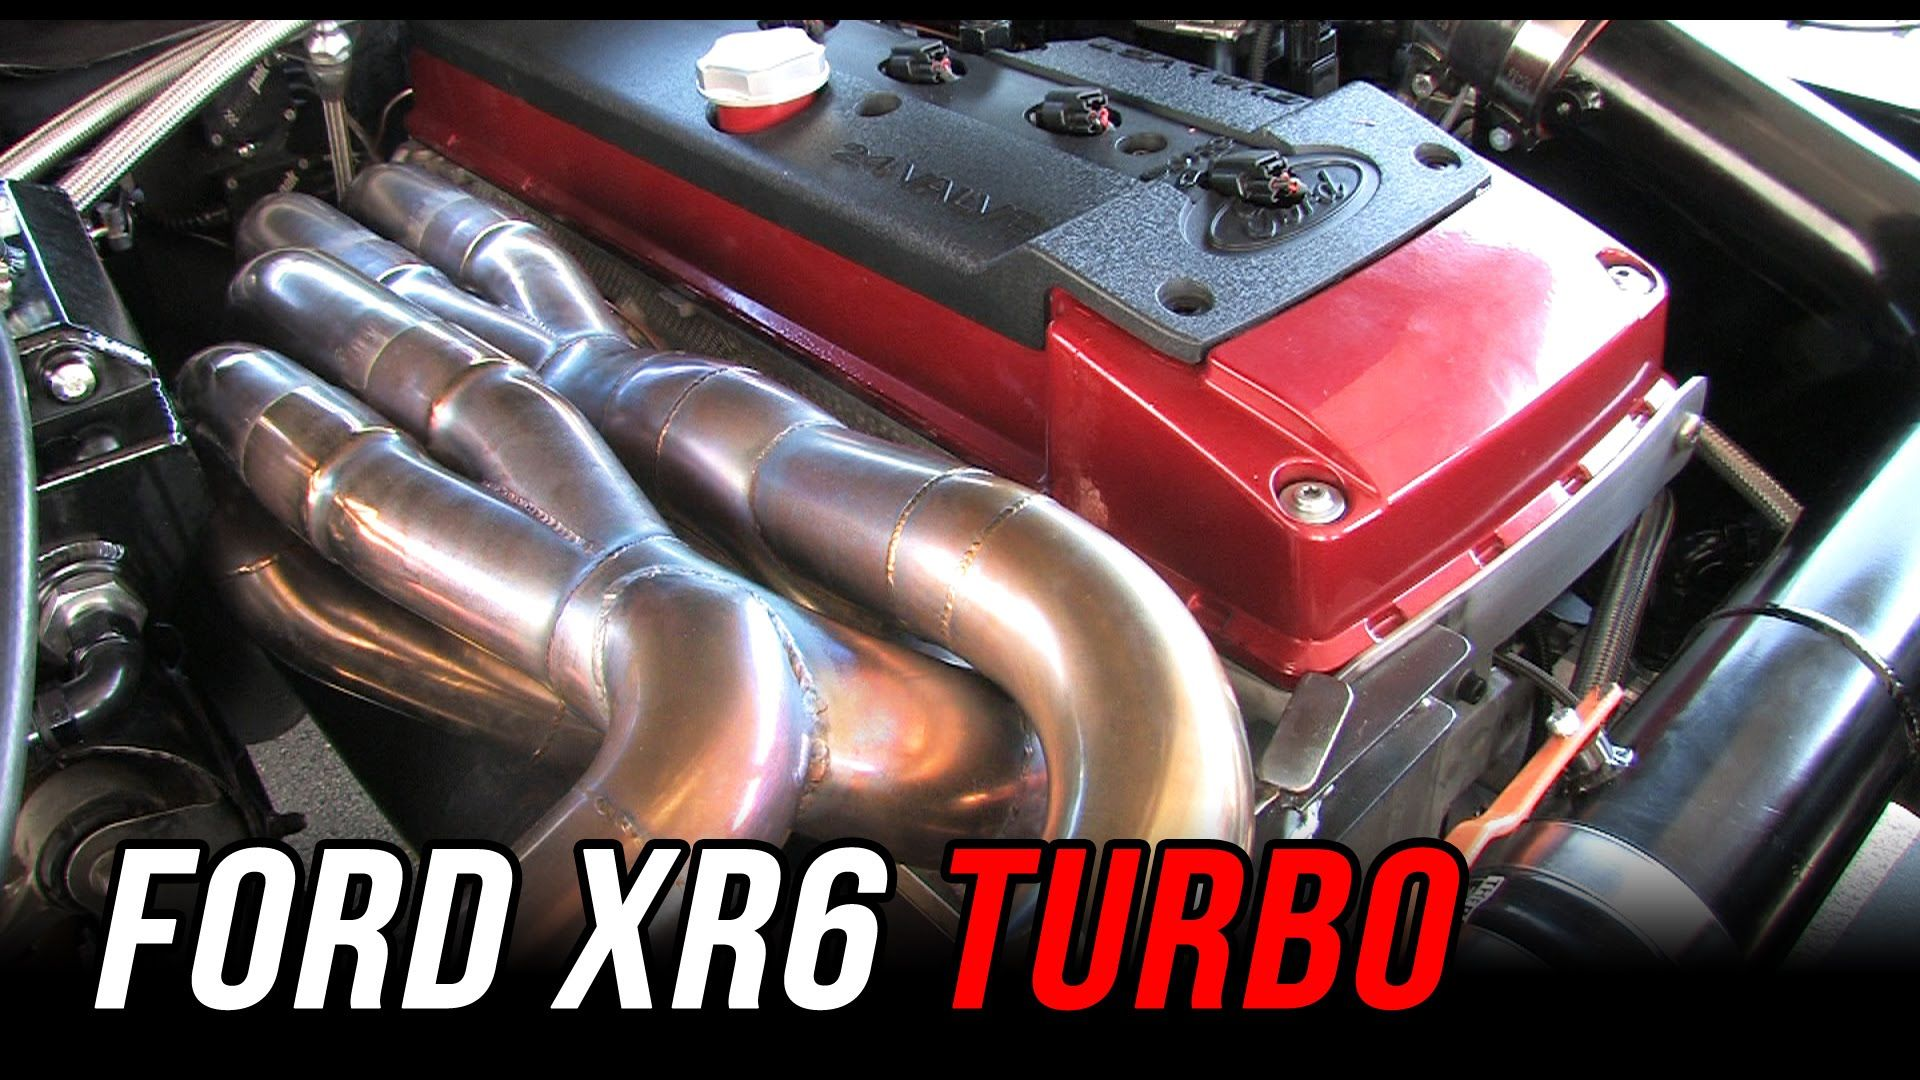 7 Second Ford Xr6 Turbo Gmkilr By Dyno Mite Turbo Ford Ford Mustang